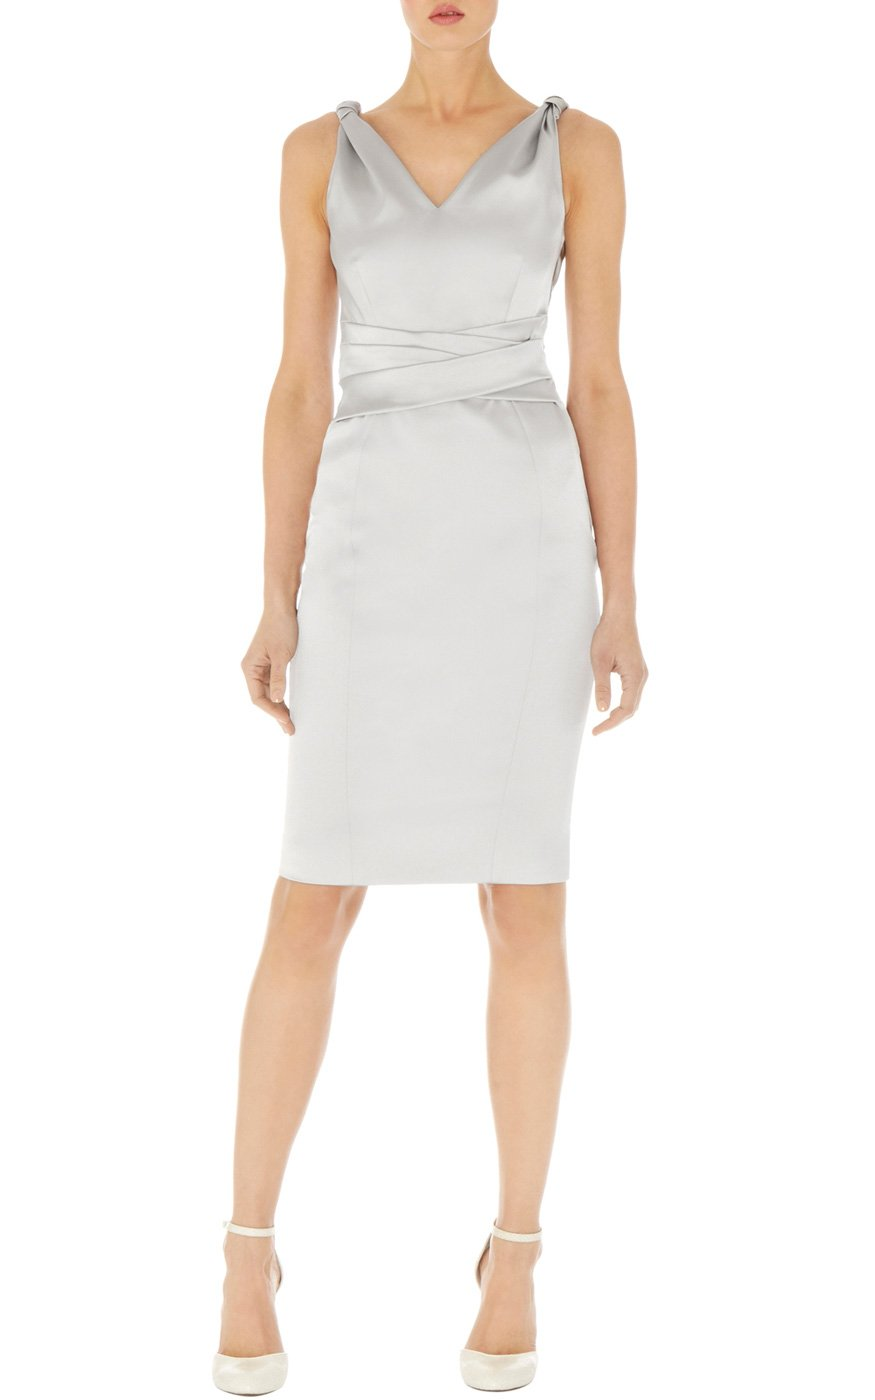 Karen Millen Signature Stretch Satin Pencil Dress In